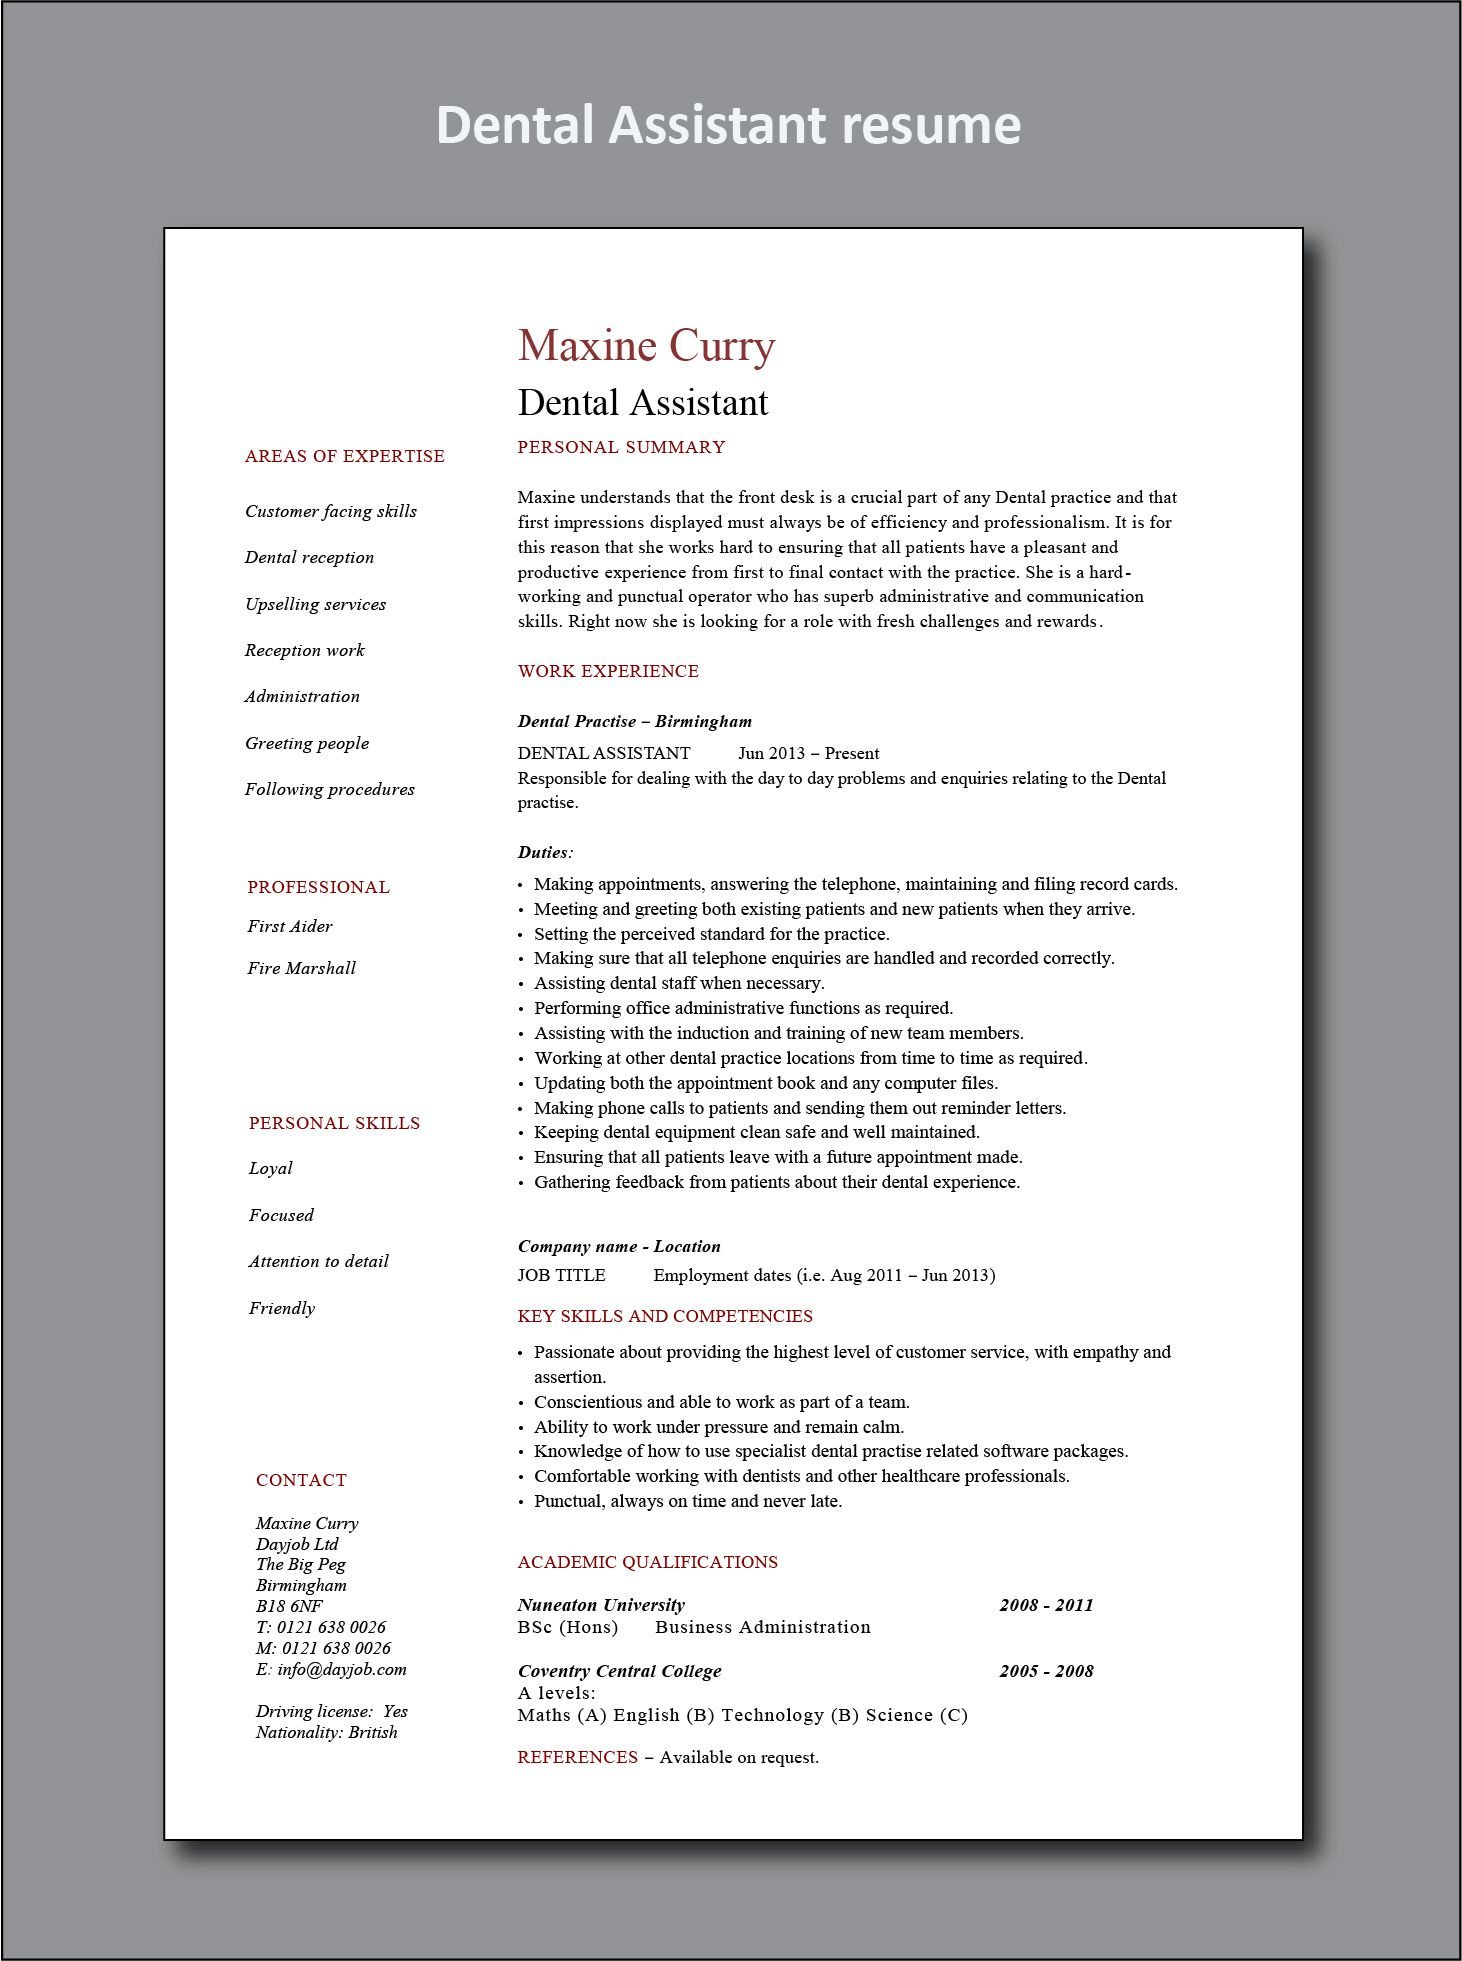 Dental assistant resume example project manager resume